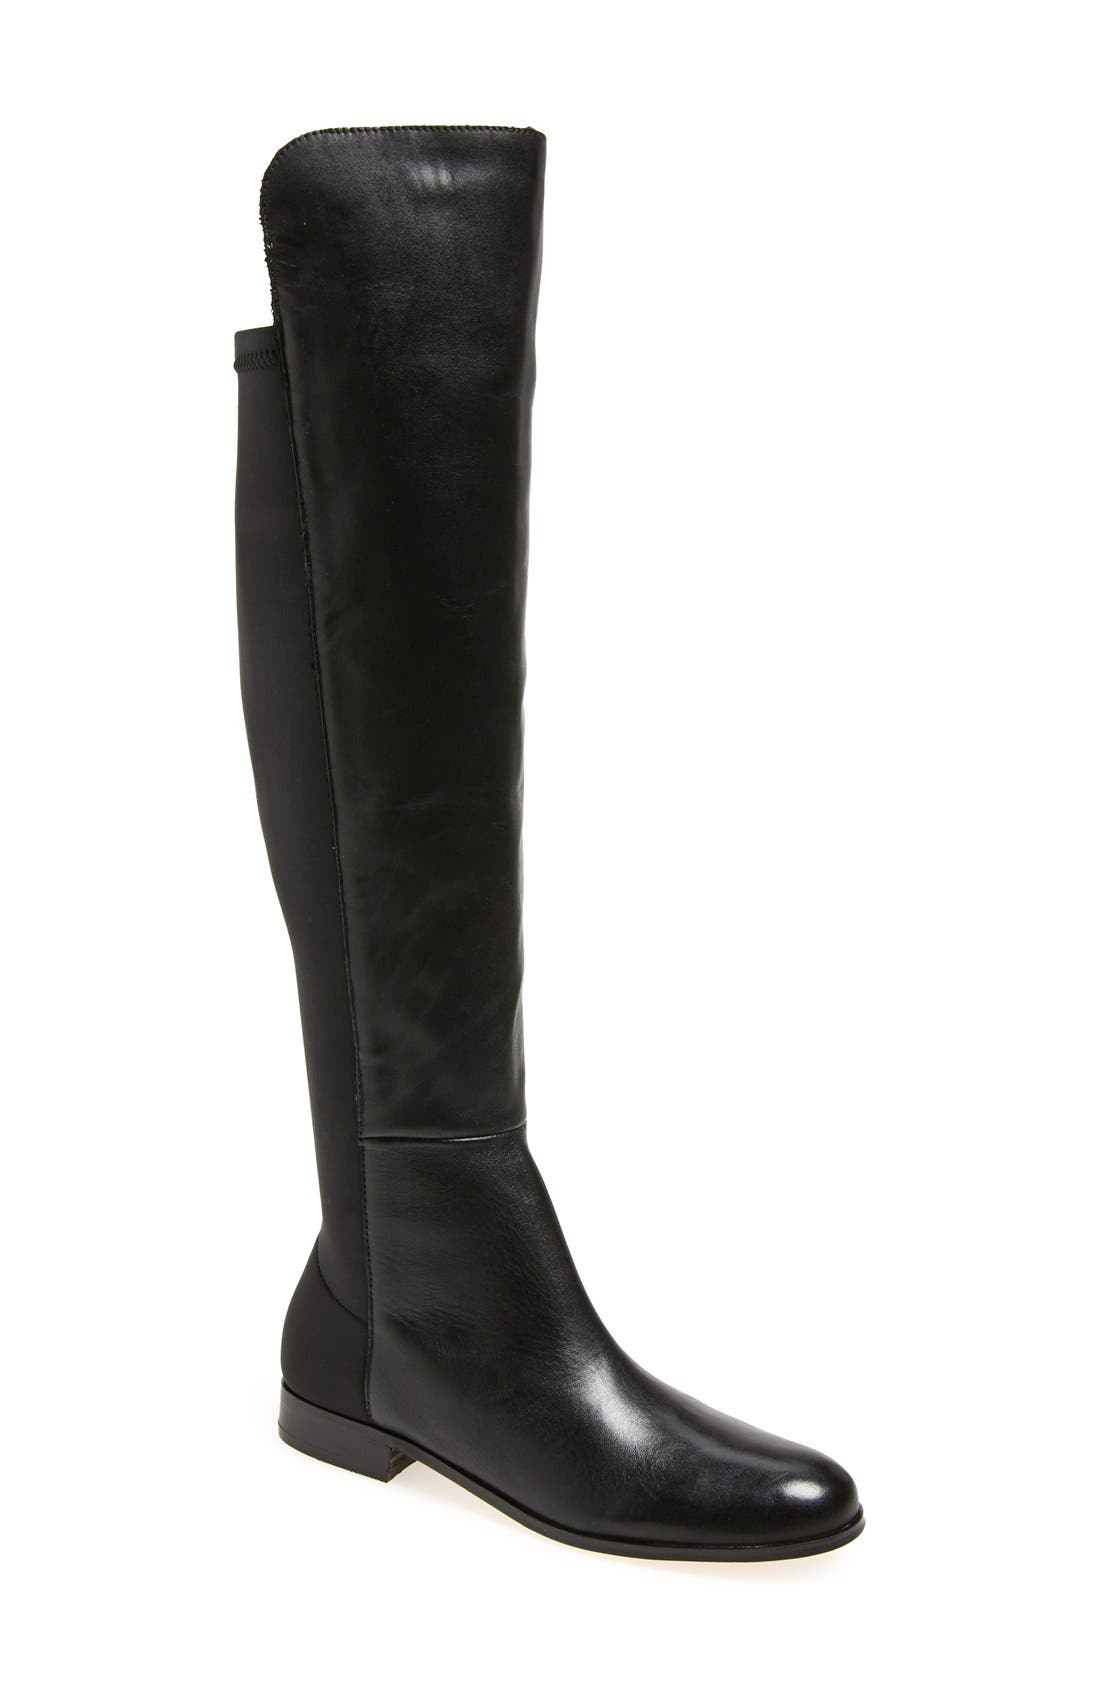 'Laura' Over the Knee Boot,                         Main,                         color, Black Leather